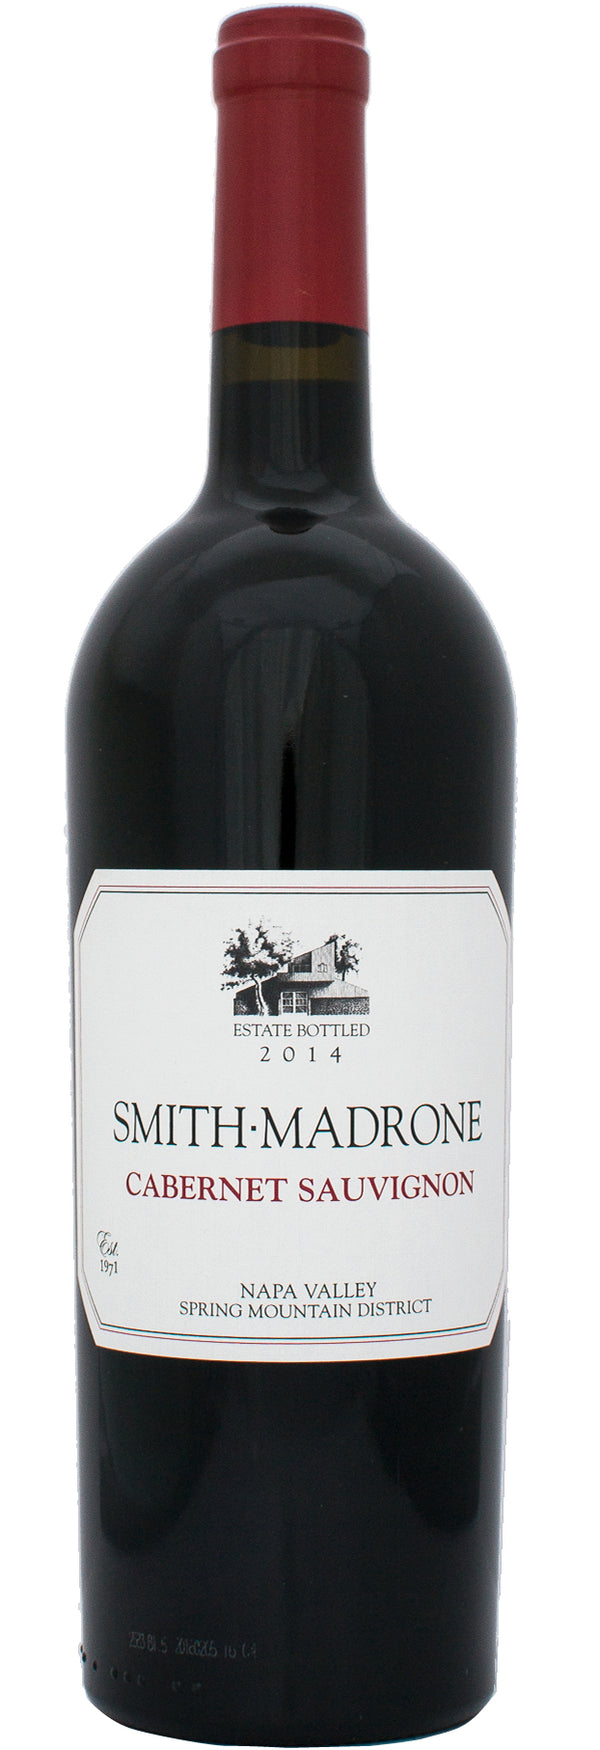 Smith Madrone Cabernet Sauvignon 2014 750ml